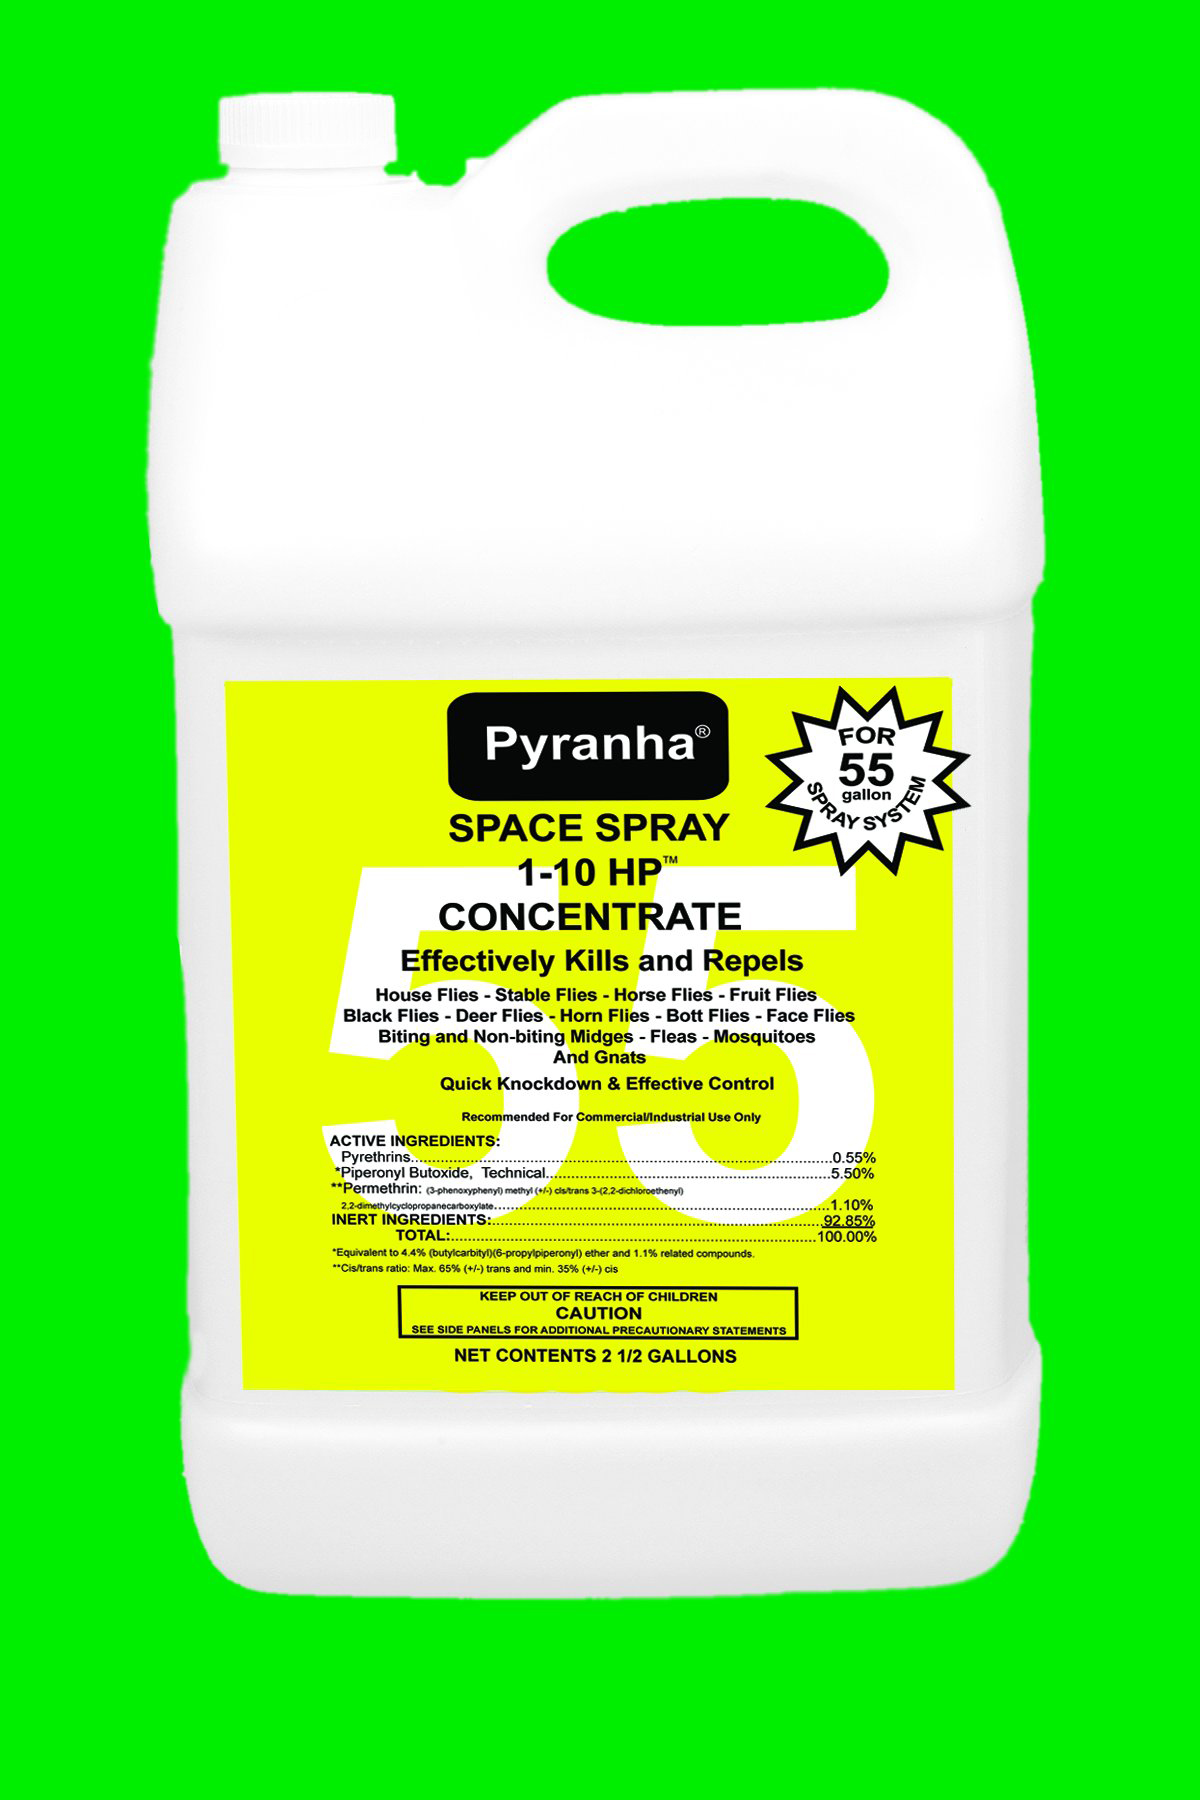 SPACE SPRAY 1-10 HP INSECTICIDE FOR 55 GAL SYSTEM